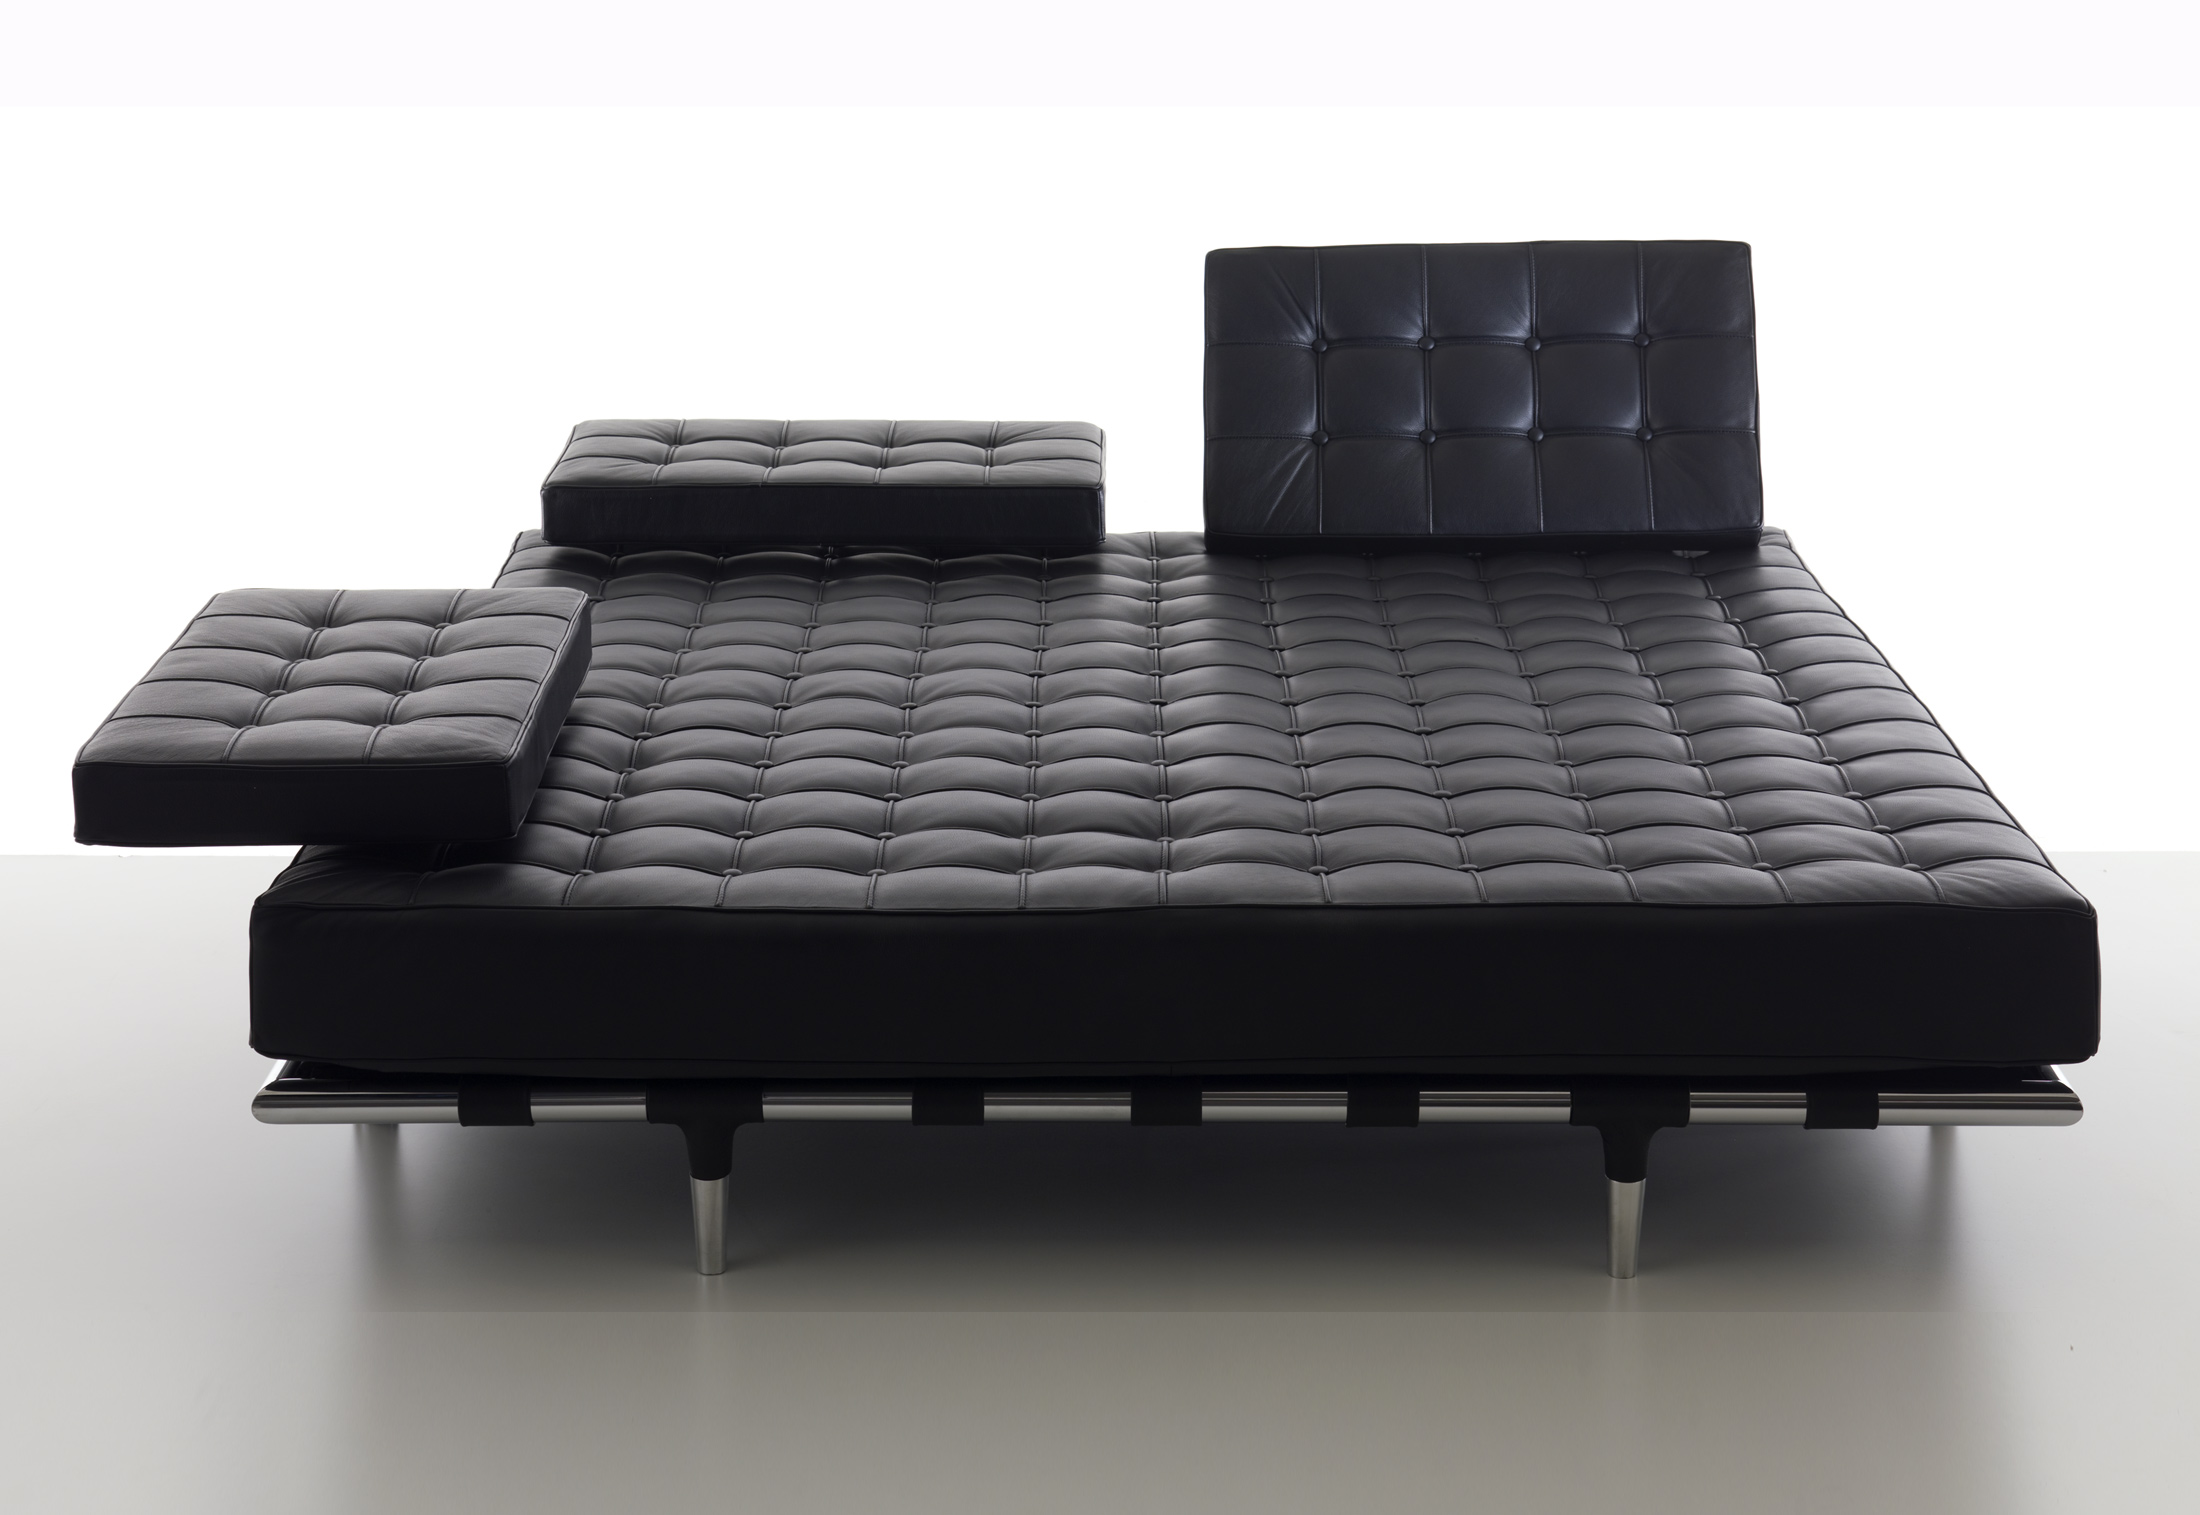 Priv chaise longue big by cassina stylepark for Chaise longue manufacturers